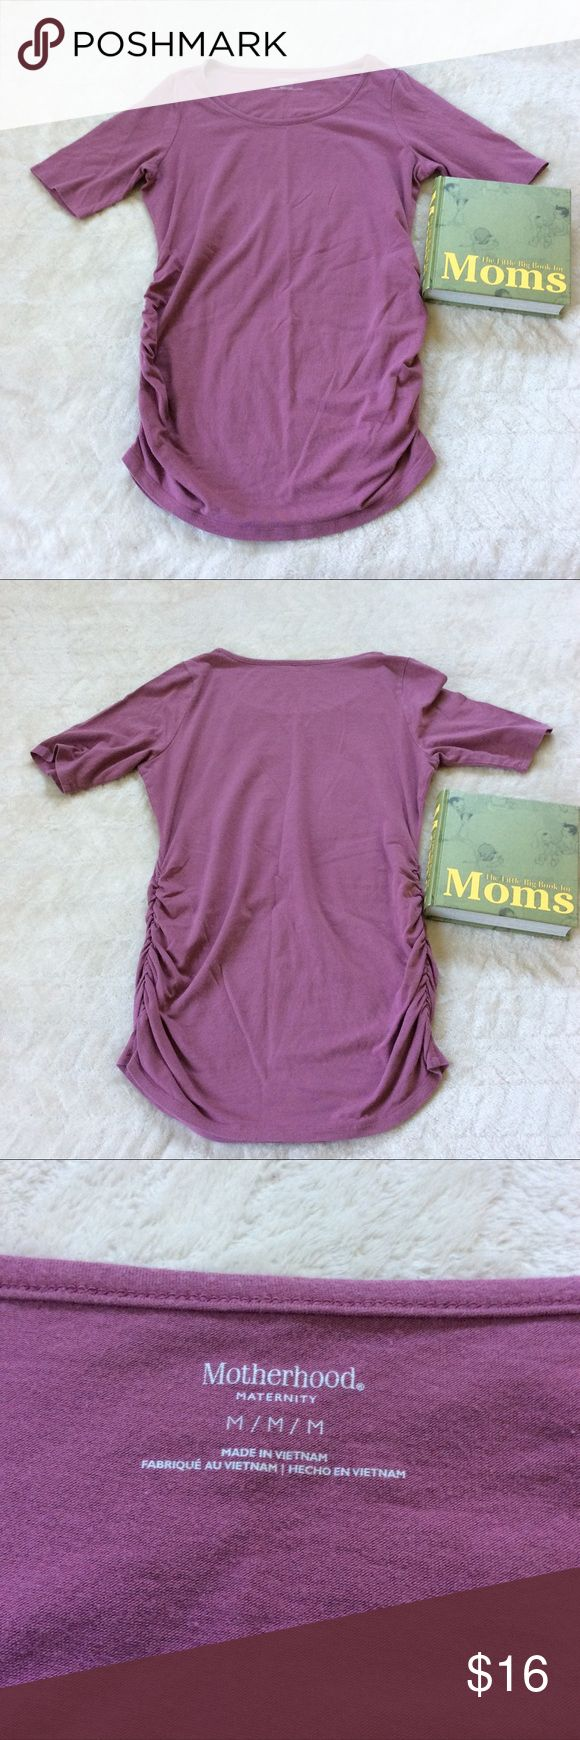 ADD TO YOUR BUNDLE: Motherhood Maternity Size M Motherhood Maternity Short sleeve Top in a Beautiful mauve color. Featuring ruching on the sides for that growing belly.  CHOOSE YOUR OWN MATERNITY BUNDLE FOR A GREAT DEAL.   71417-8 Motherhood Maternity Tops Tees - Short Sleeve